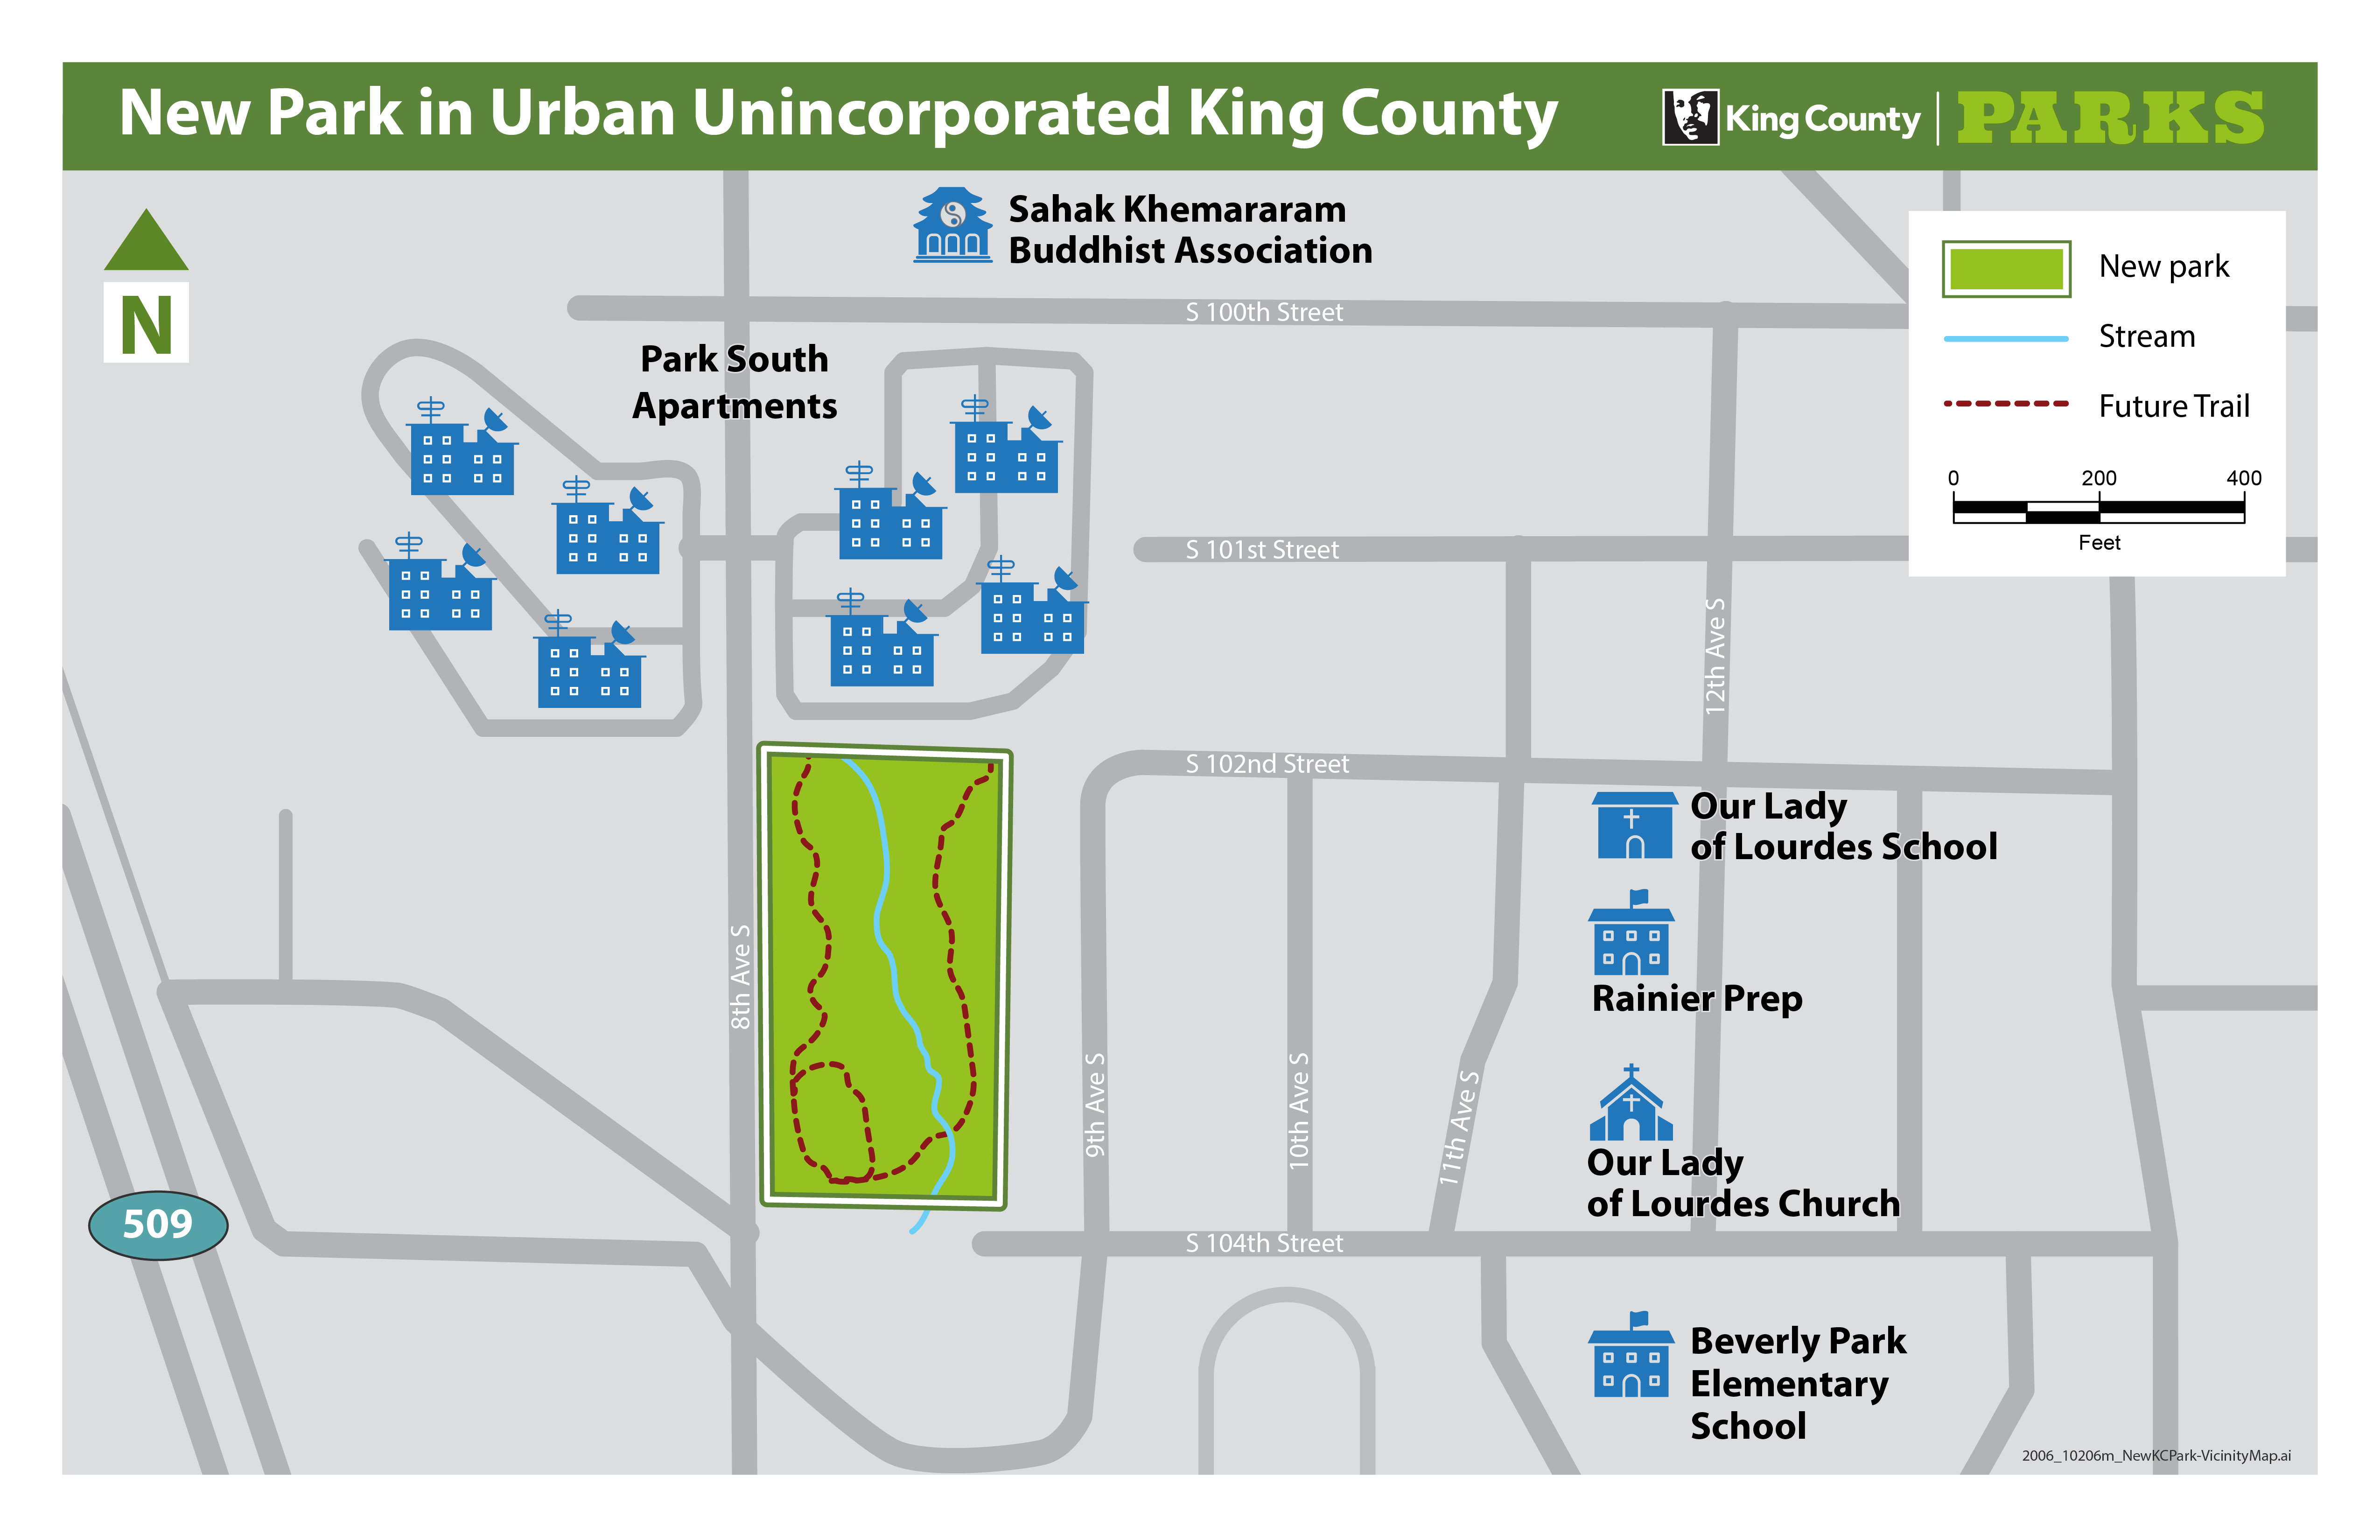 A map showing a new park in unincorporated King County.